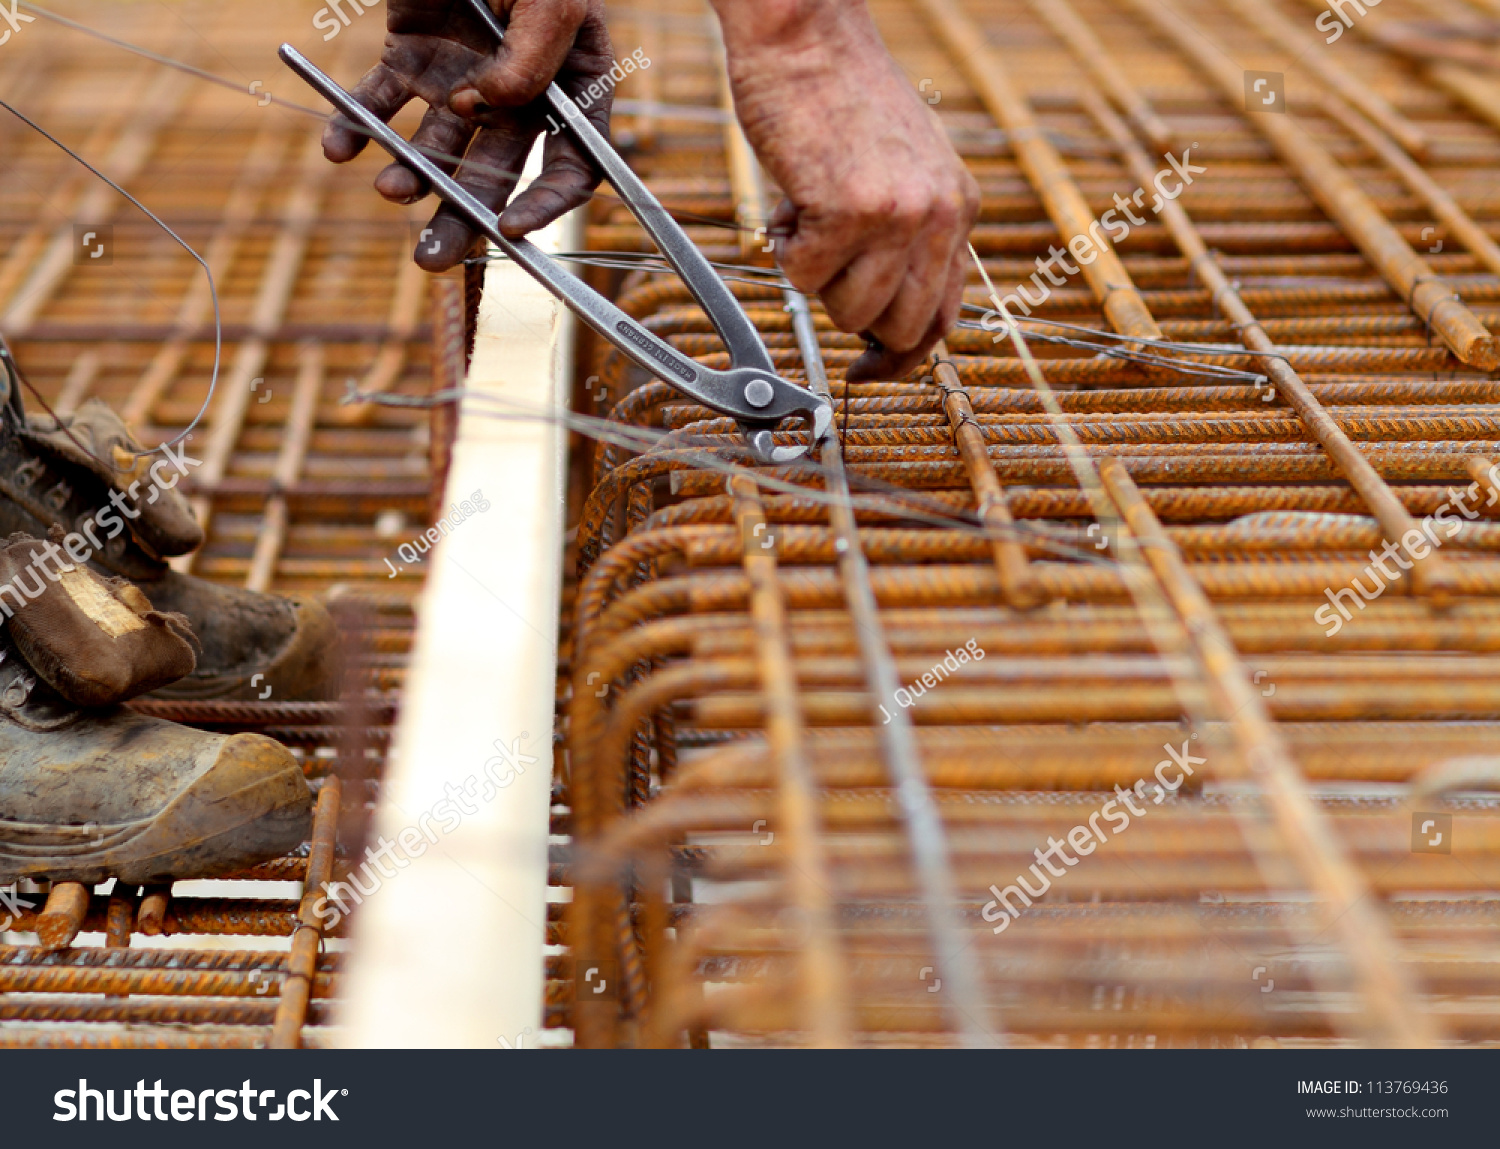 A rodbuster or ironworker working on… Stock Photo 113769436 - Avopix com